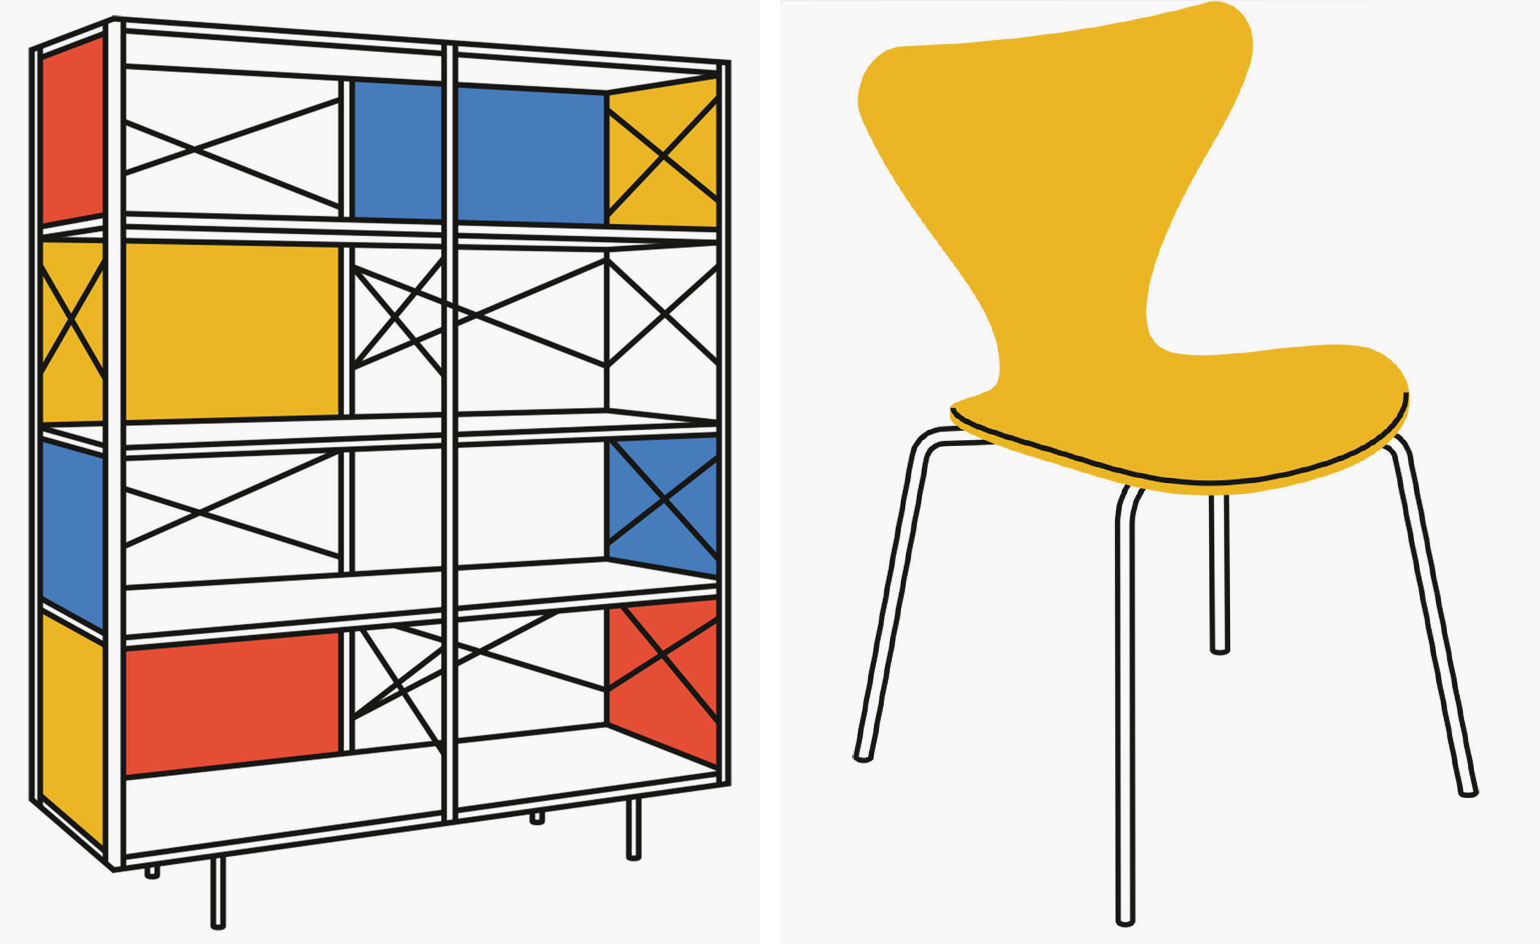 Thames & Hudson's Mid-Century Modern collections | Wallpaper*